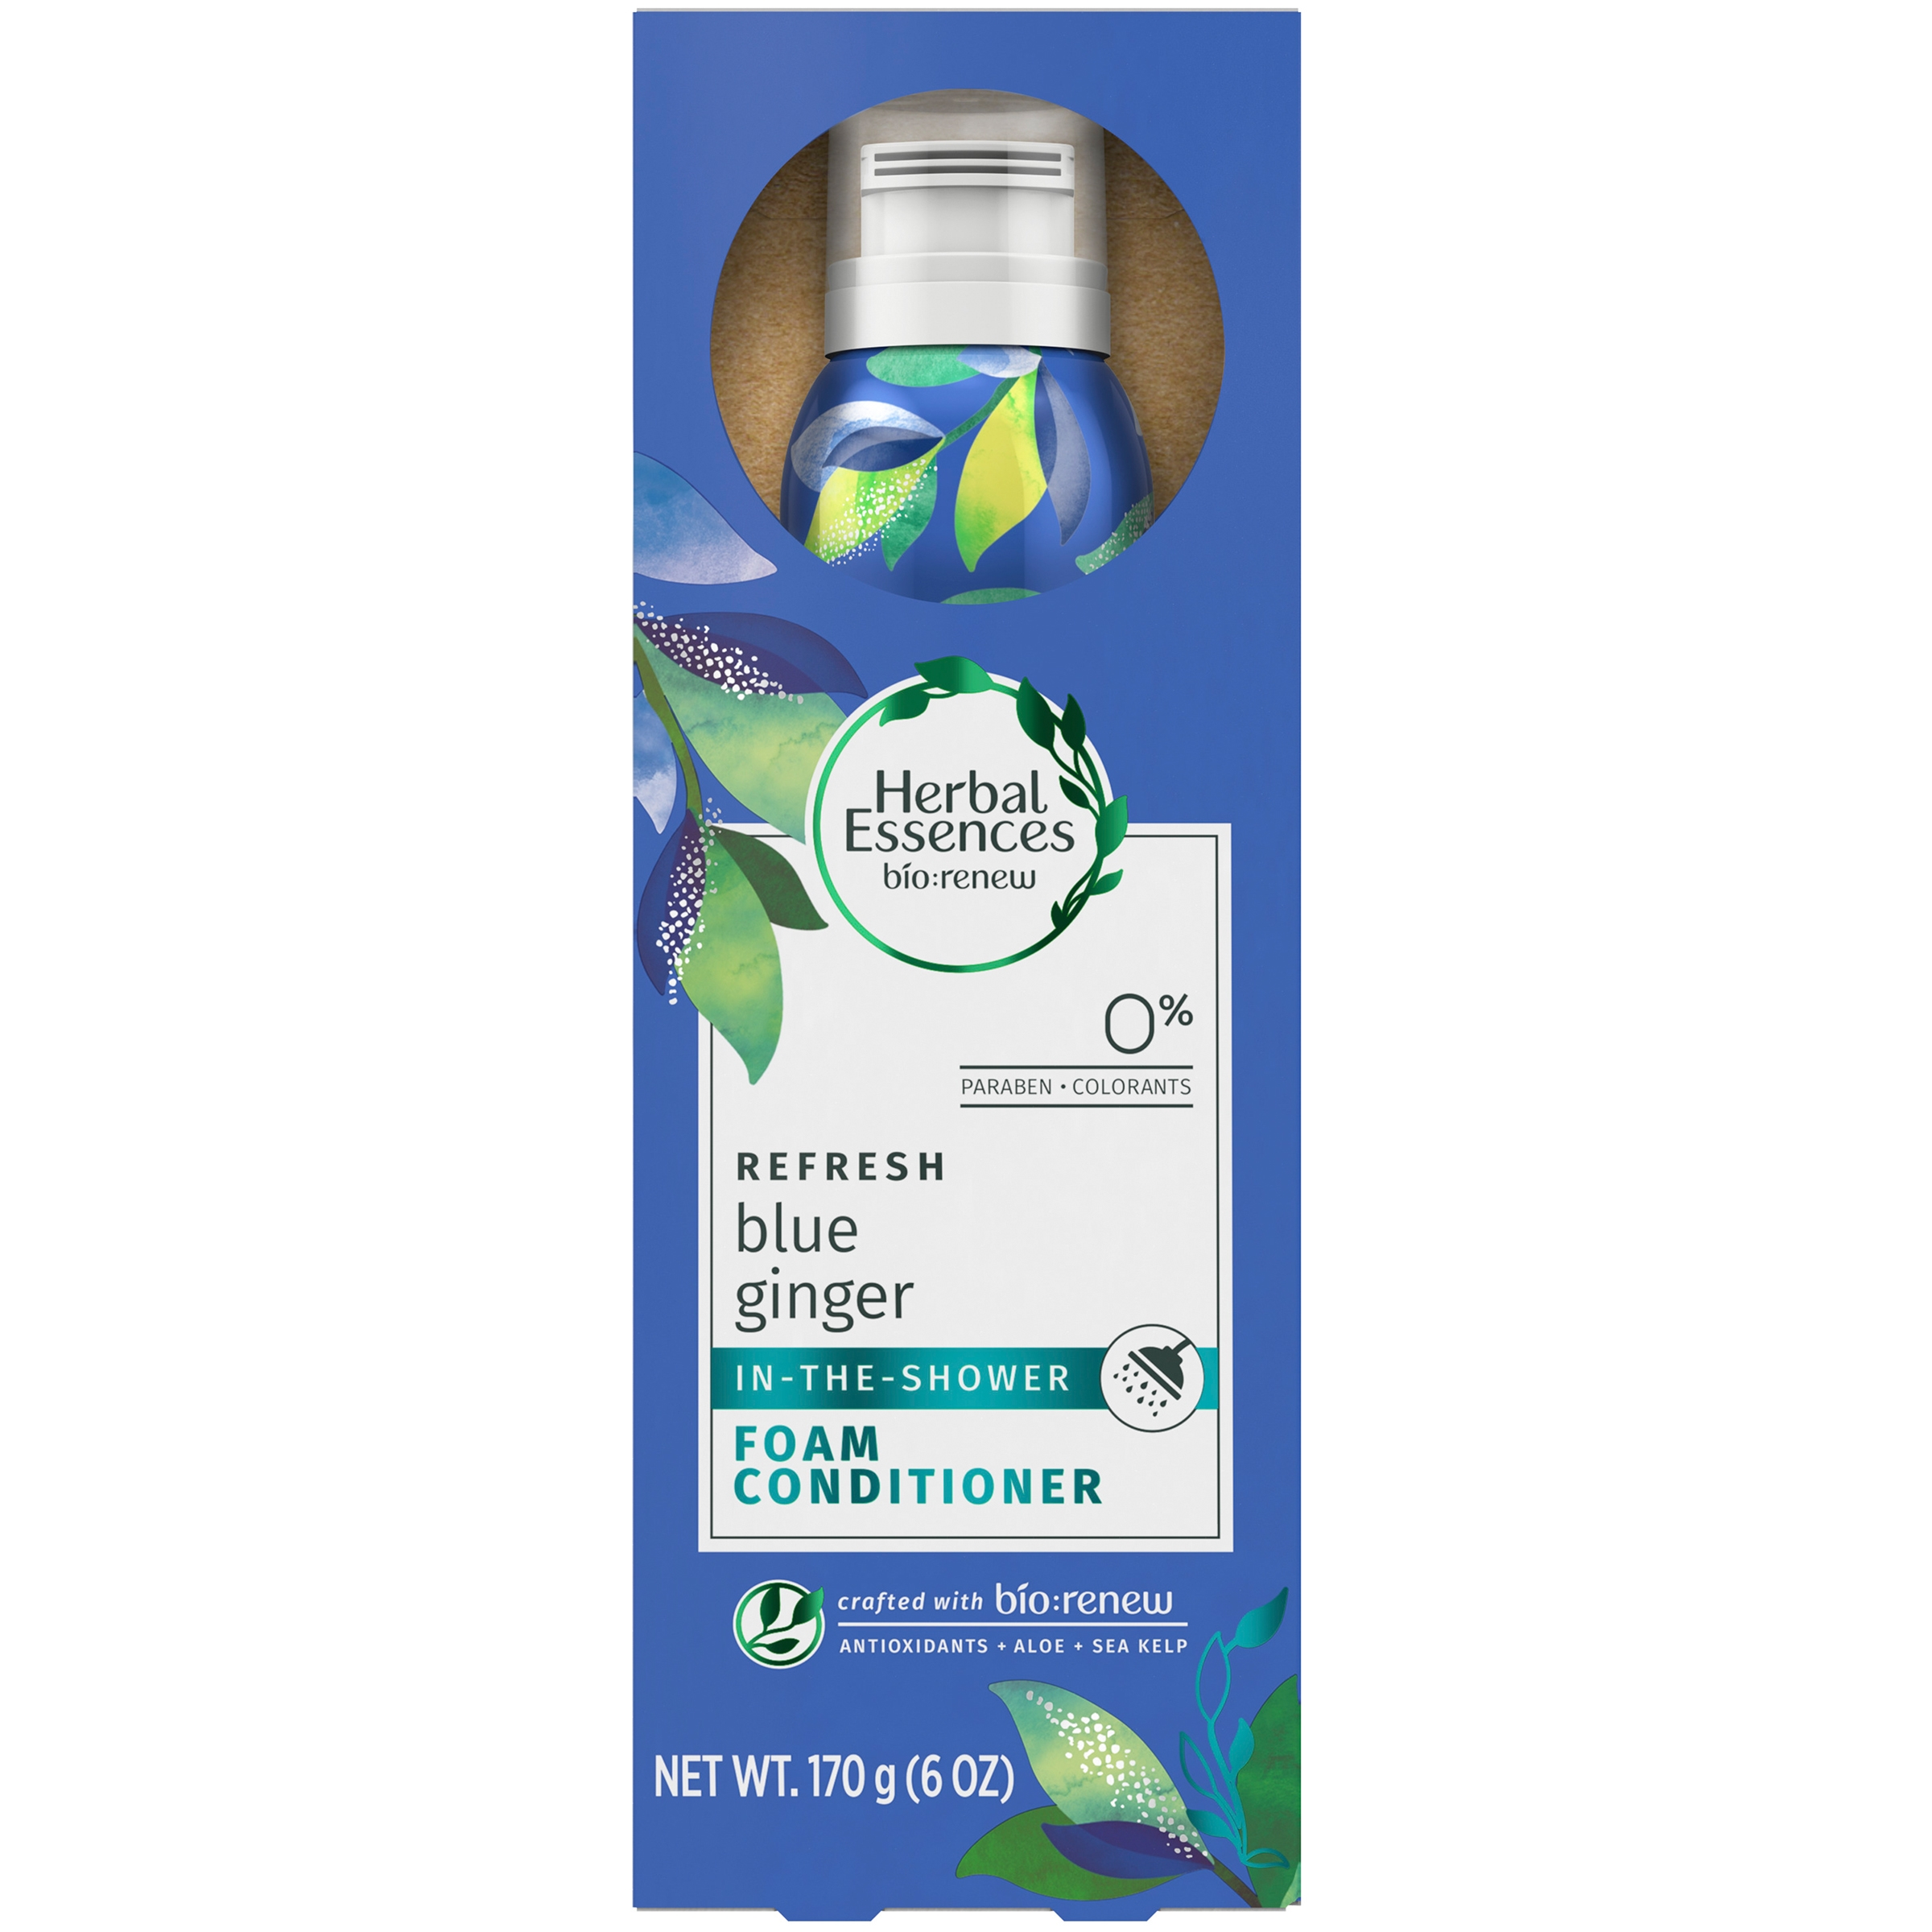 Herbal Essences Bio:Renew Blue Ginger In-The-Shower Foam Conditioner, 6 oz